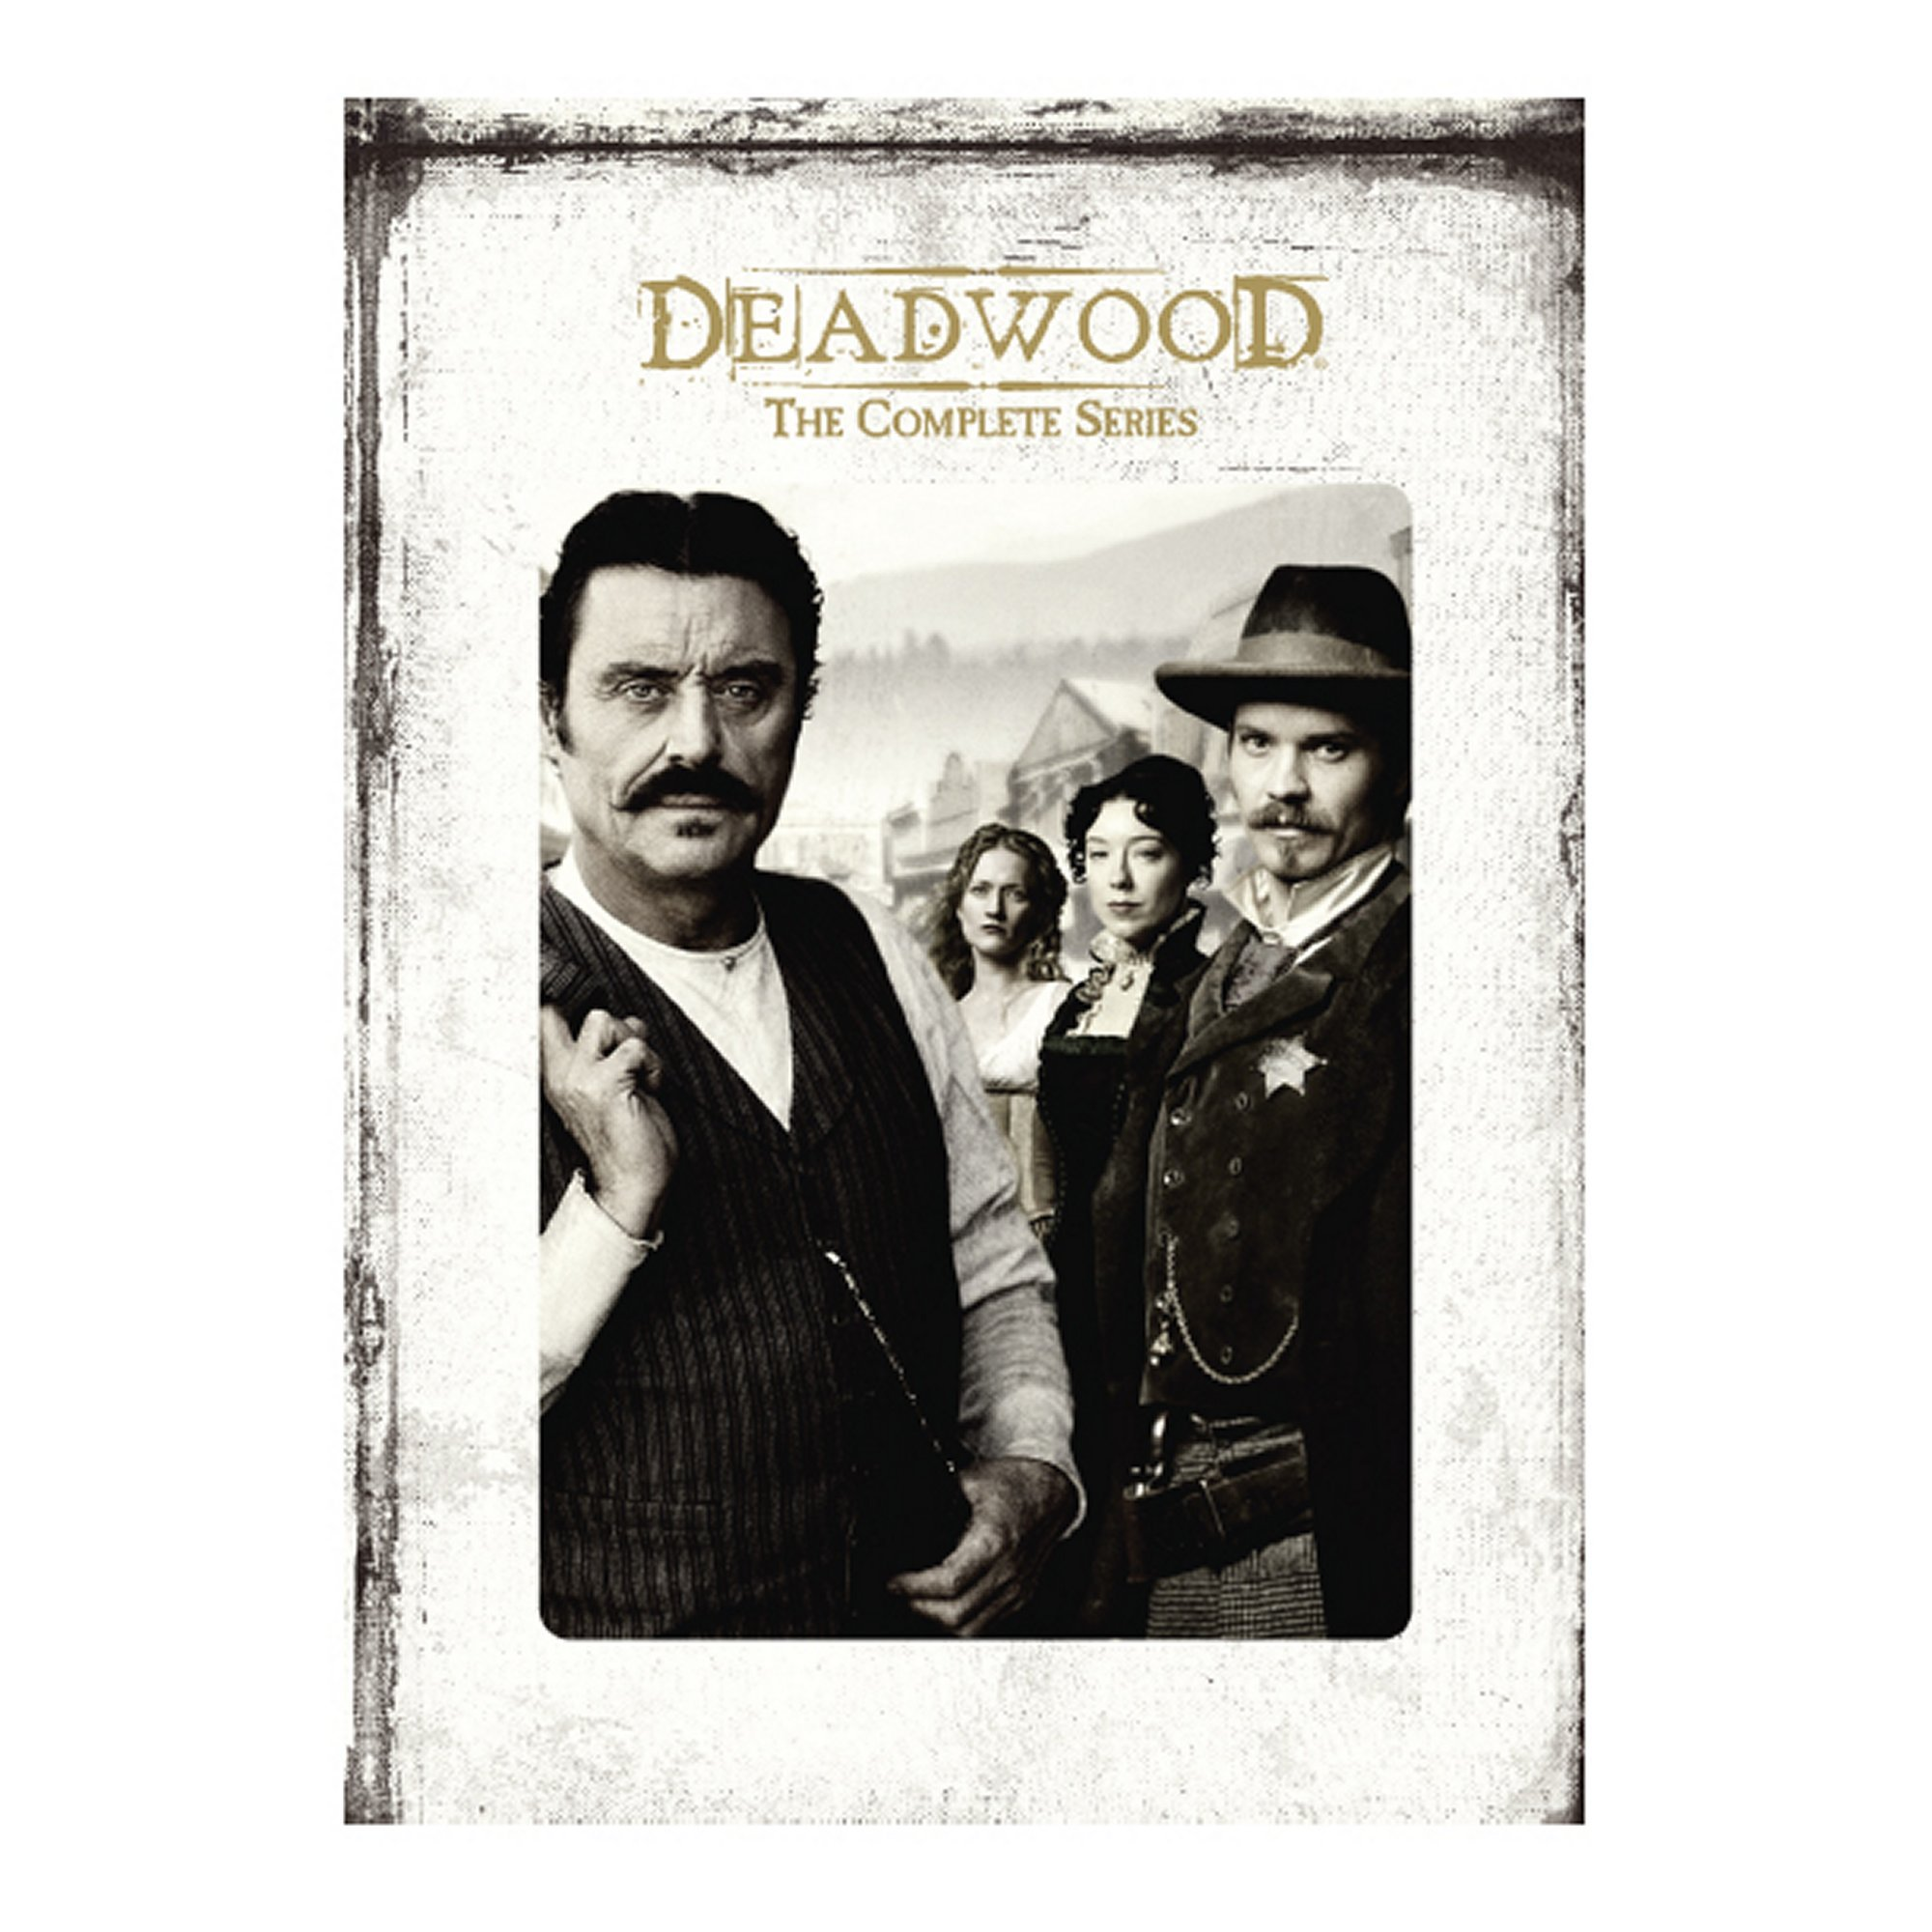 Deadwood: The Complete Series by HBO Home Video